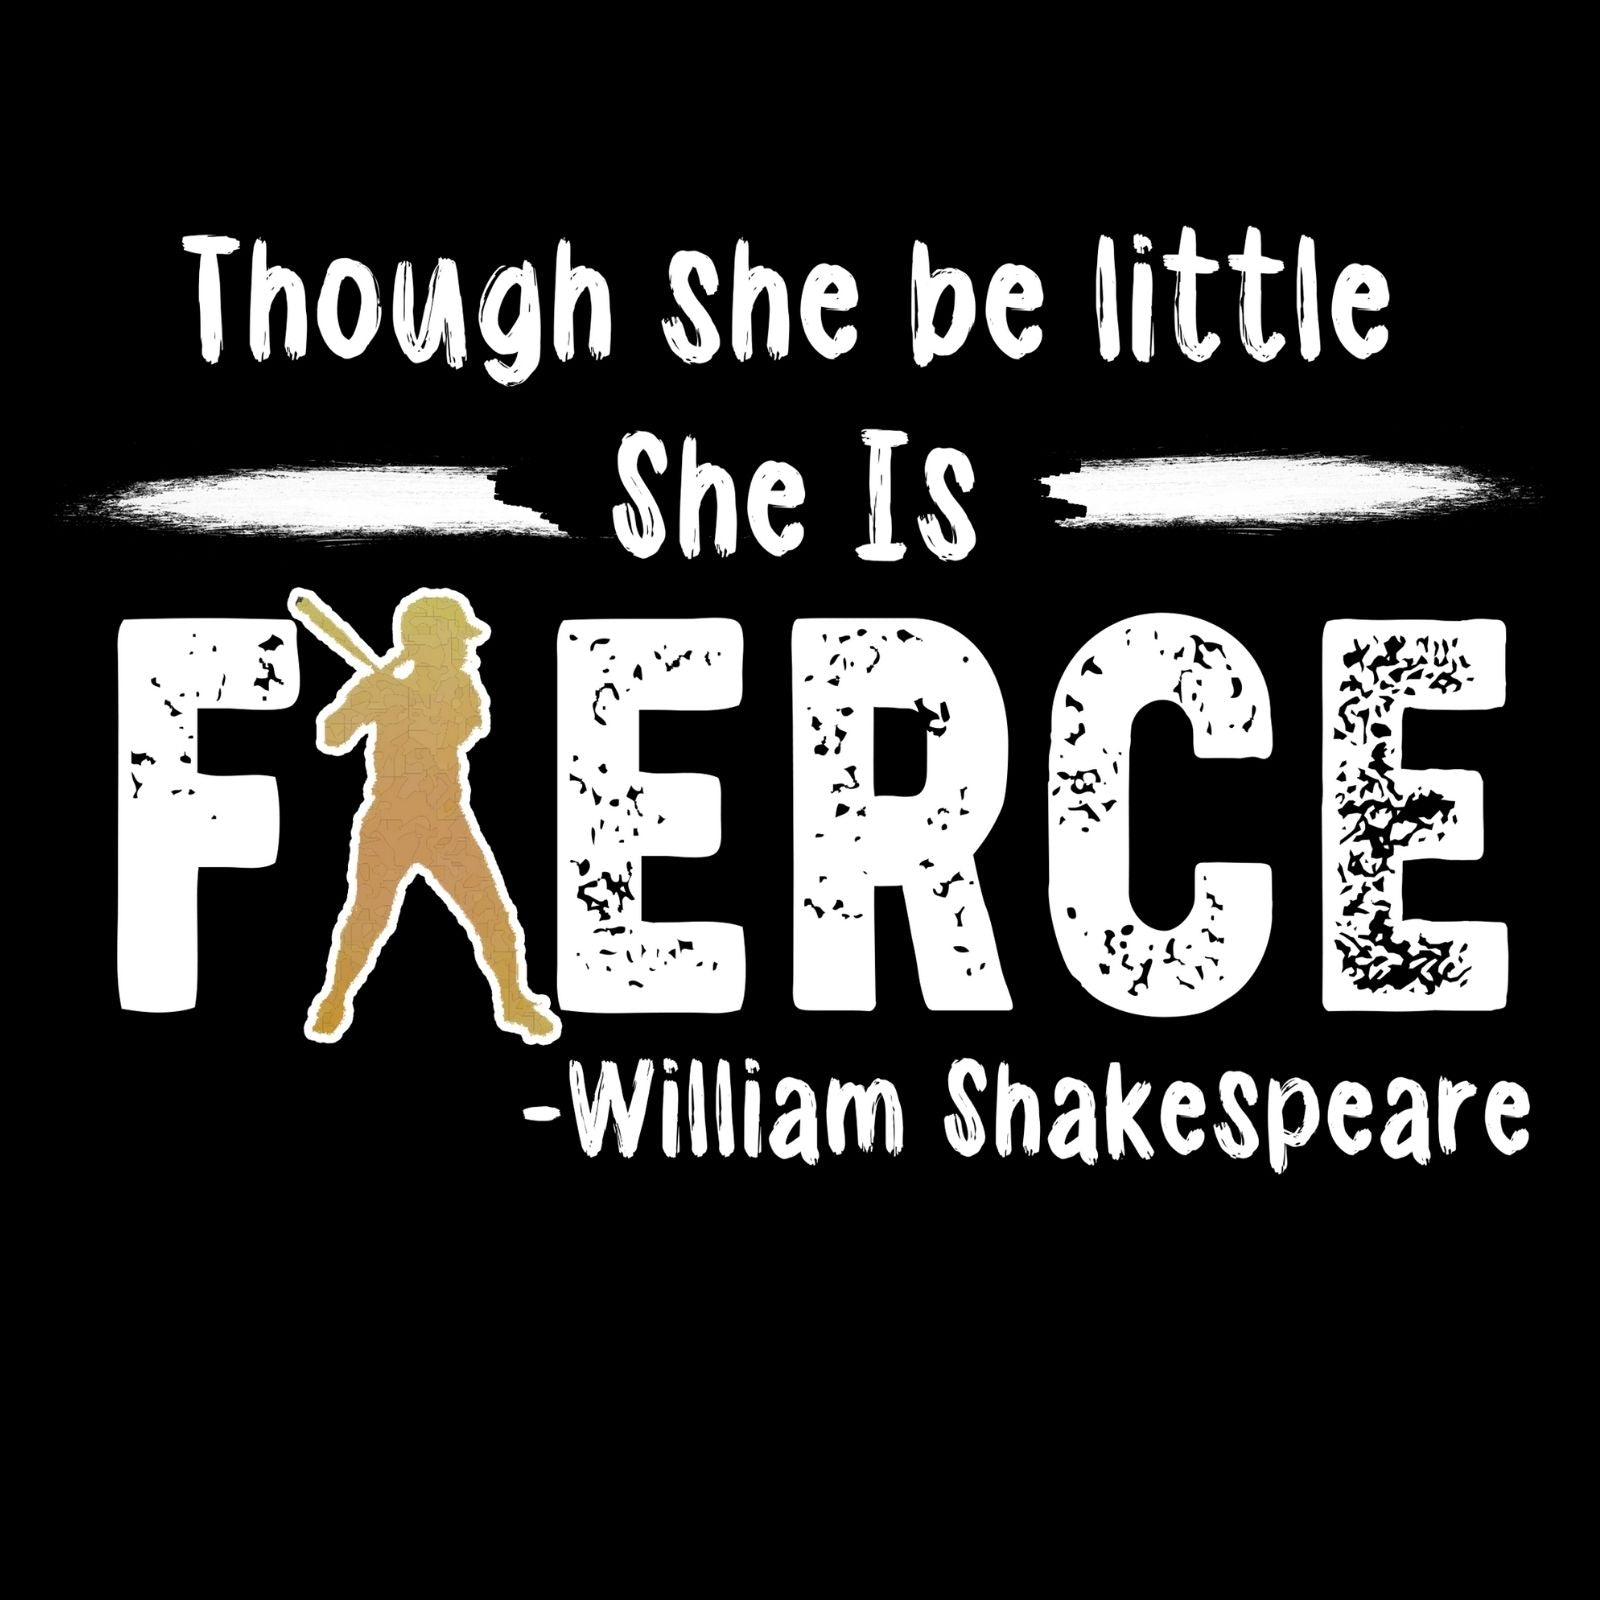 Though She Be Little She Is Fierce 3 -William Shakespeare - Bastard Graphics